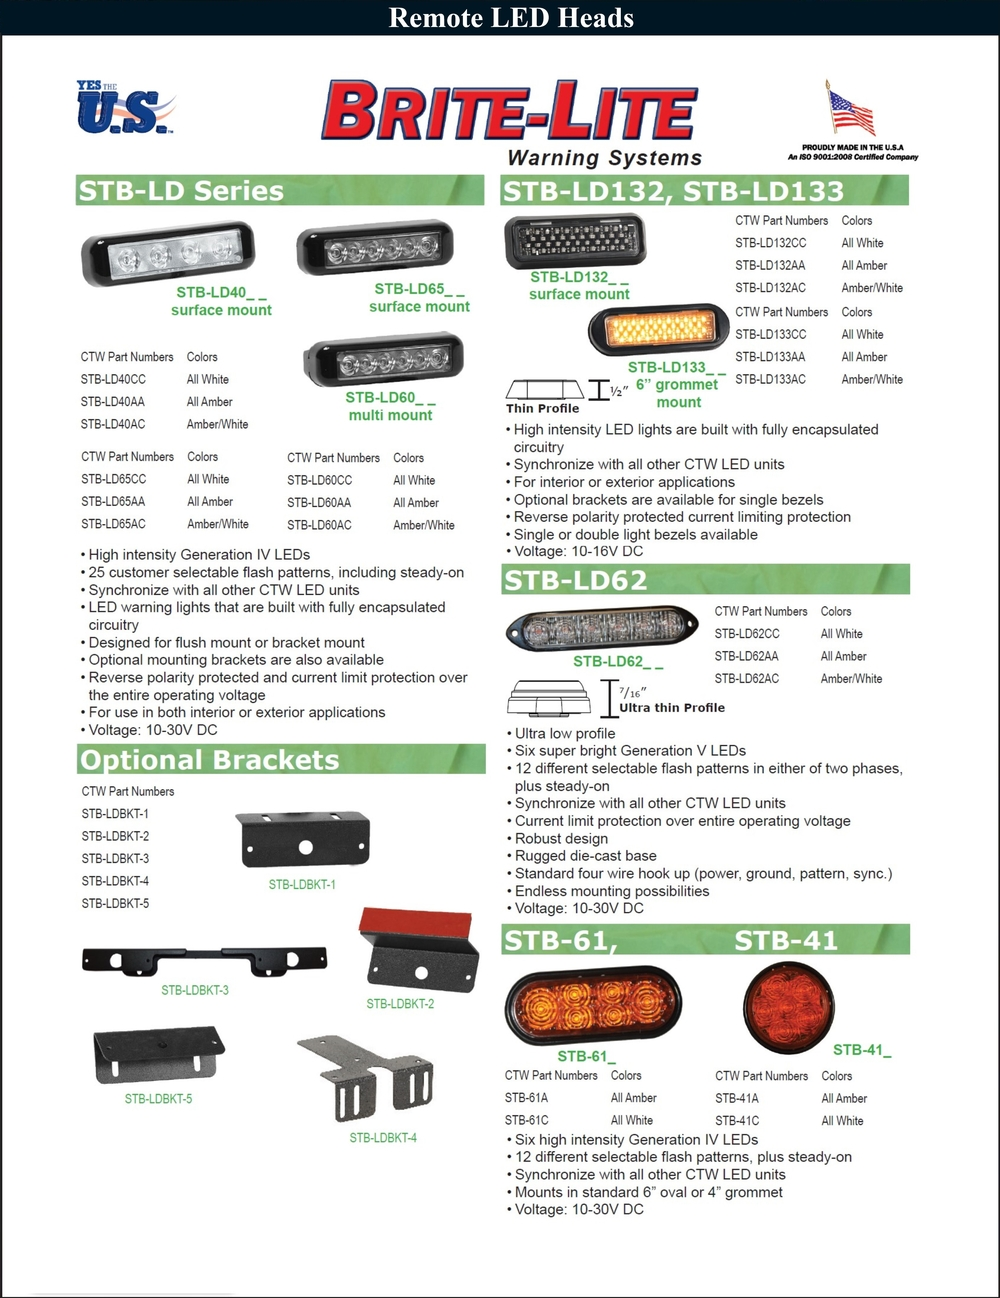 Remote LED Heads